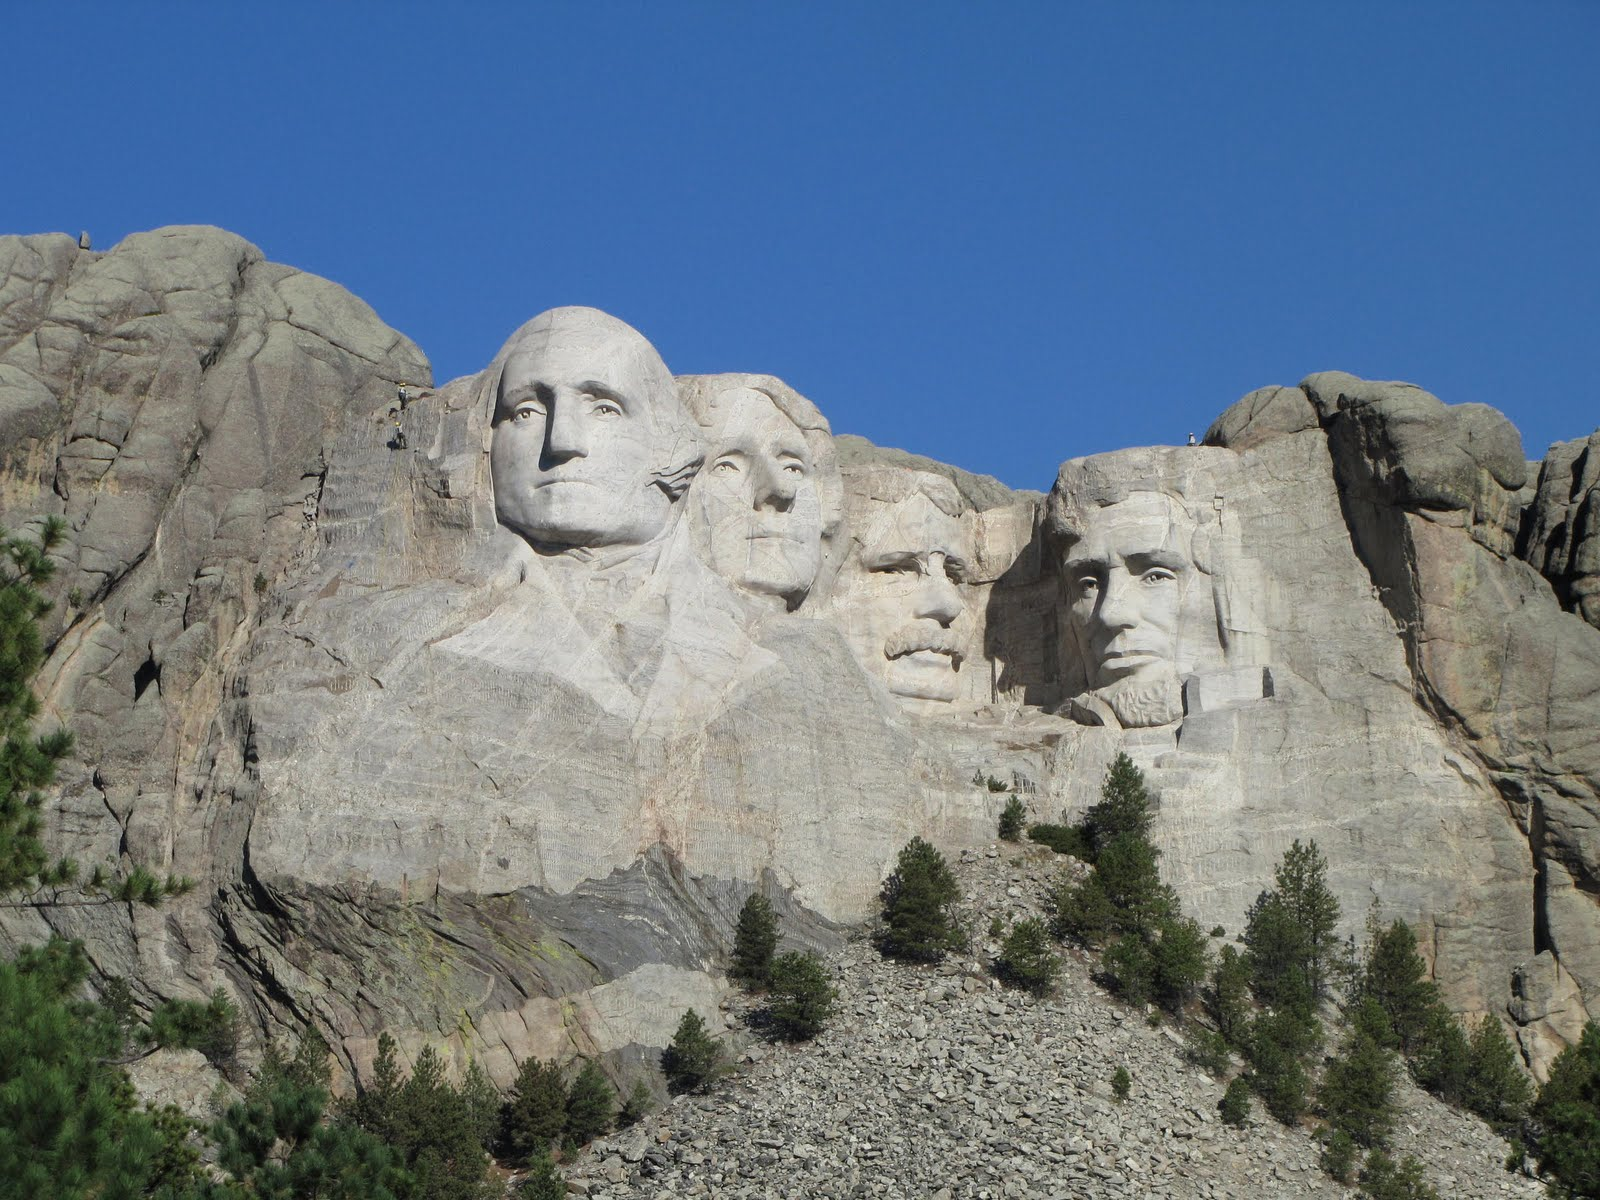 Onearip Mount Rushmore Wall Drug And The Badlands